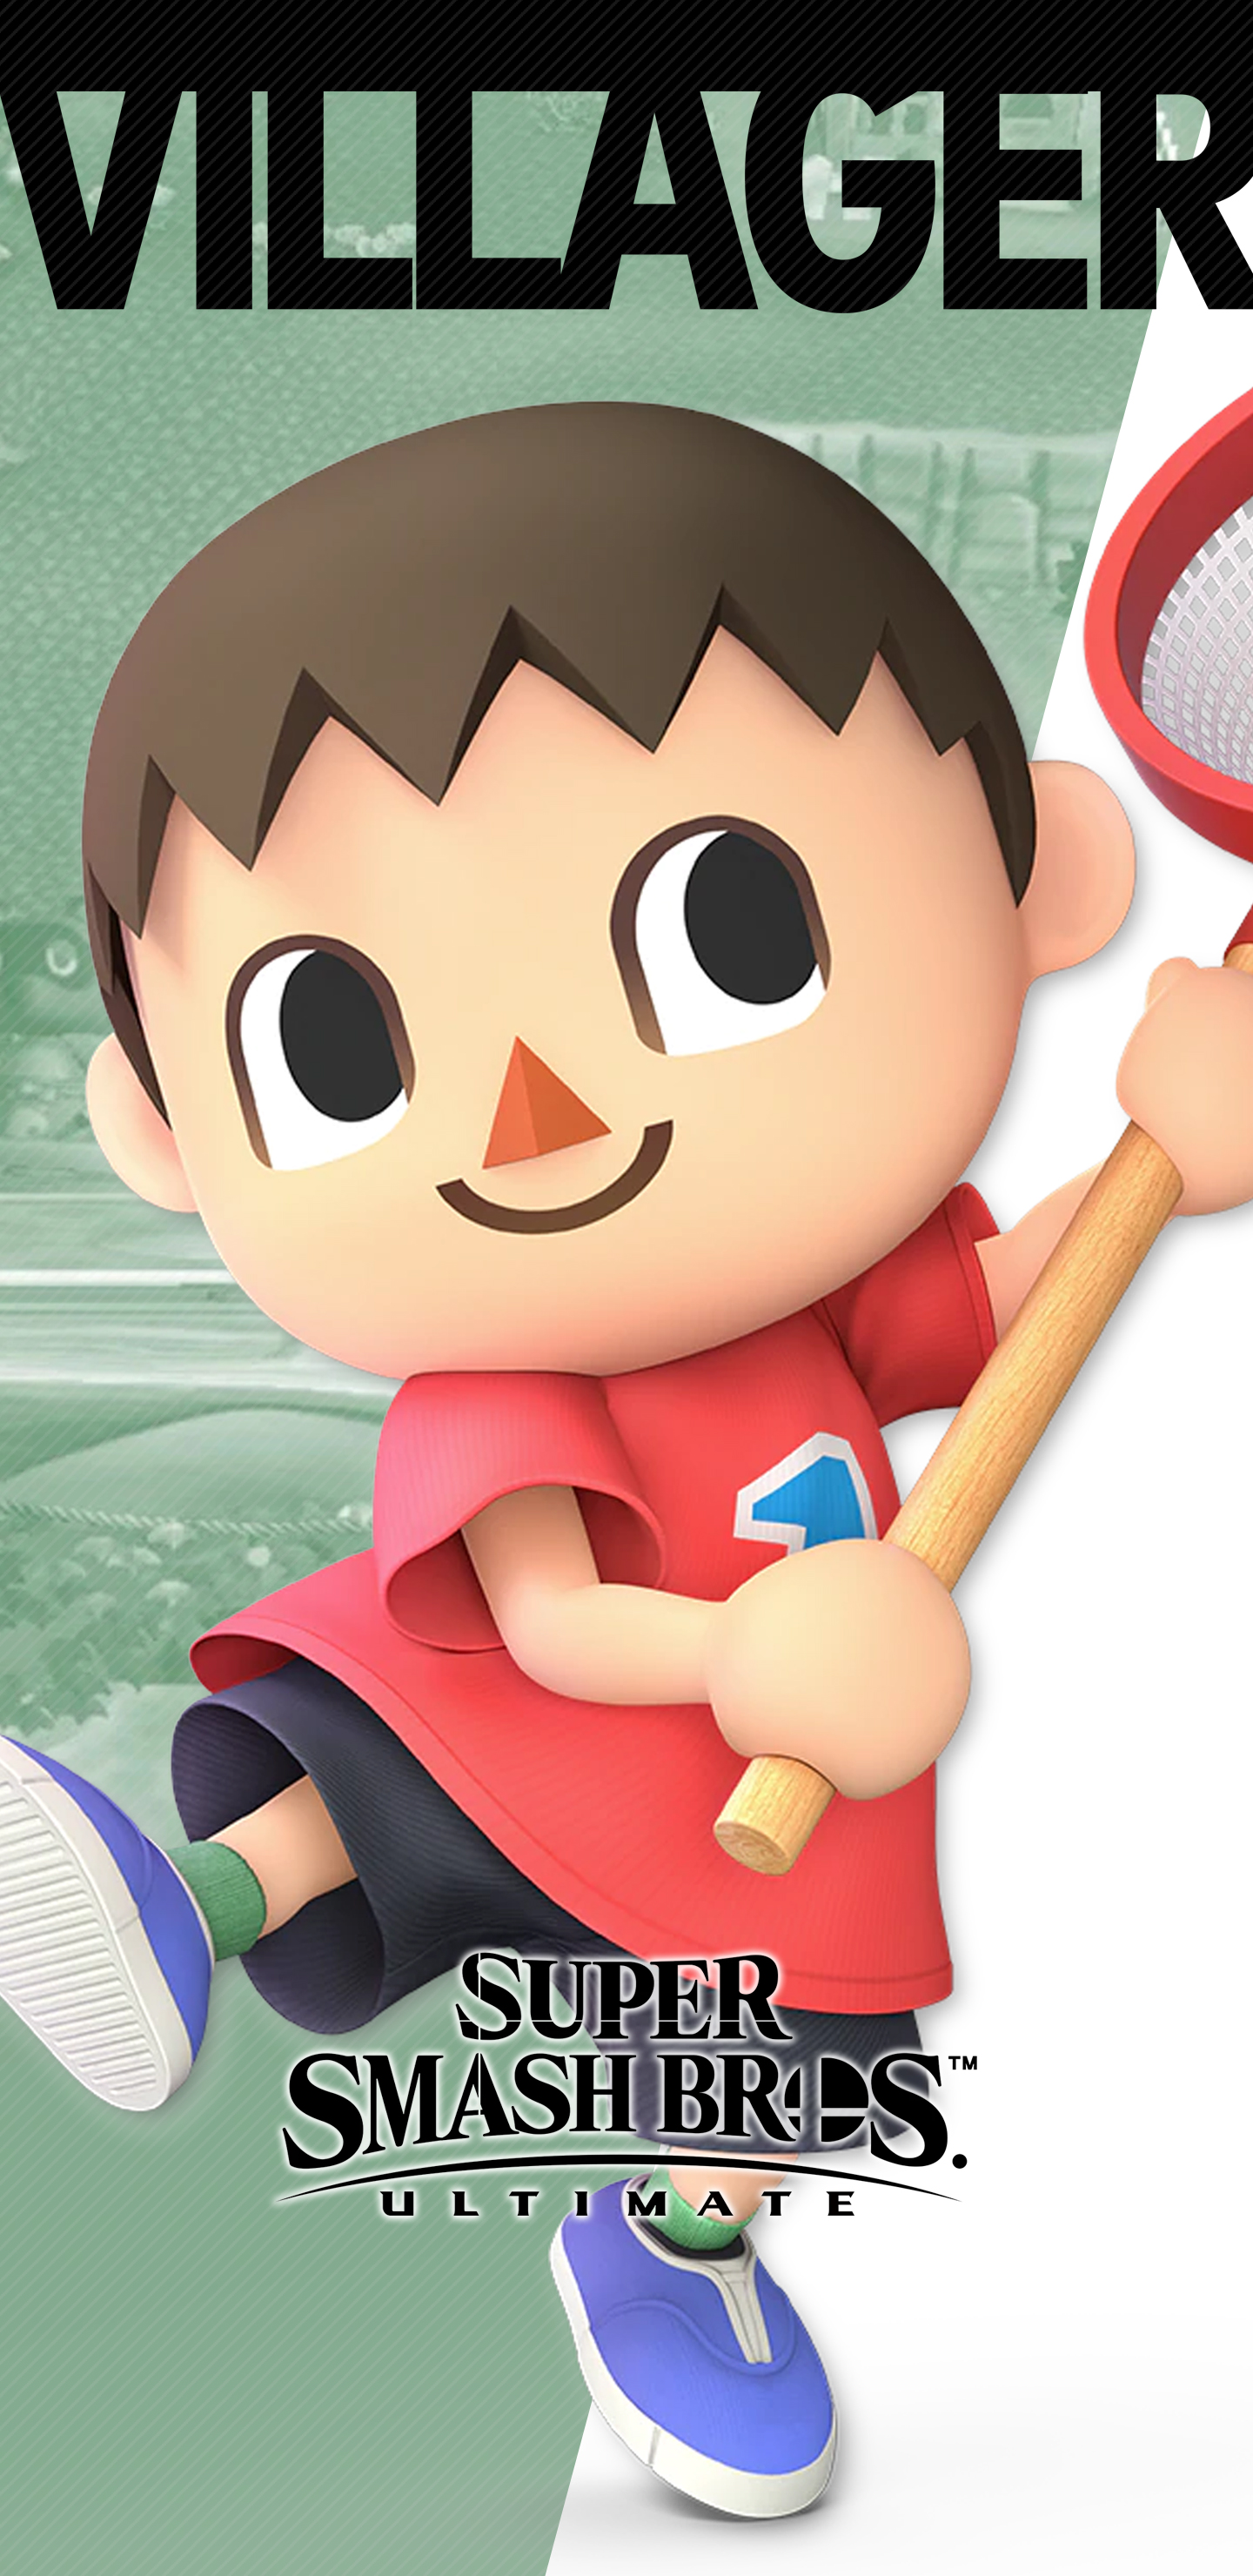 Super Smash Bros Ultimate Villager Wallpapers Cat With Monocle